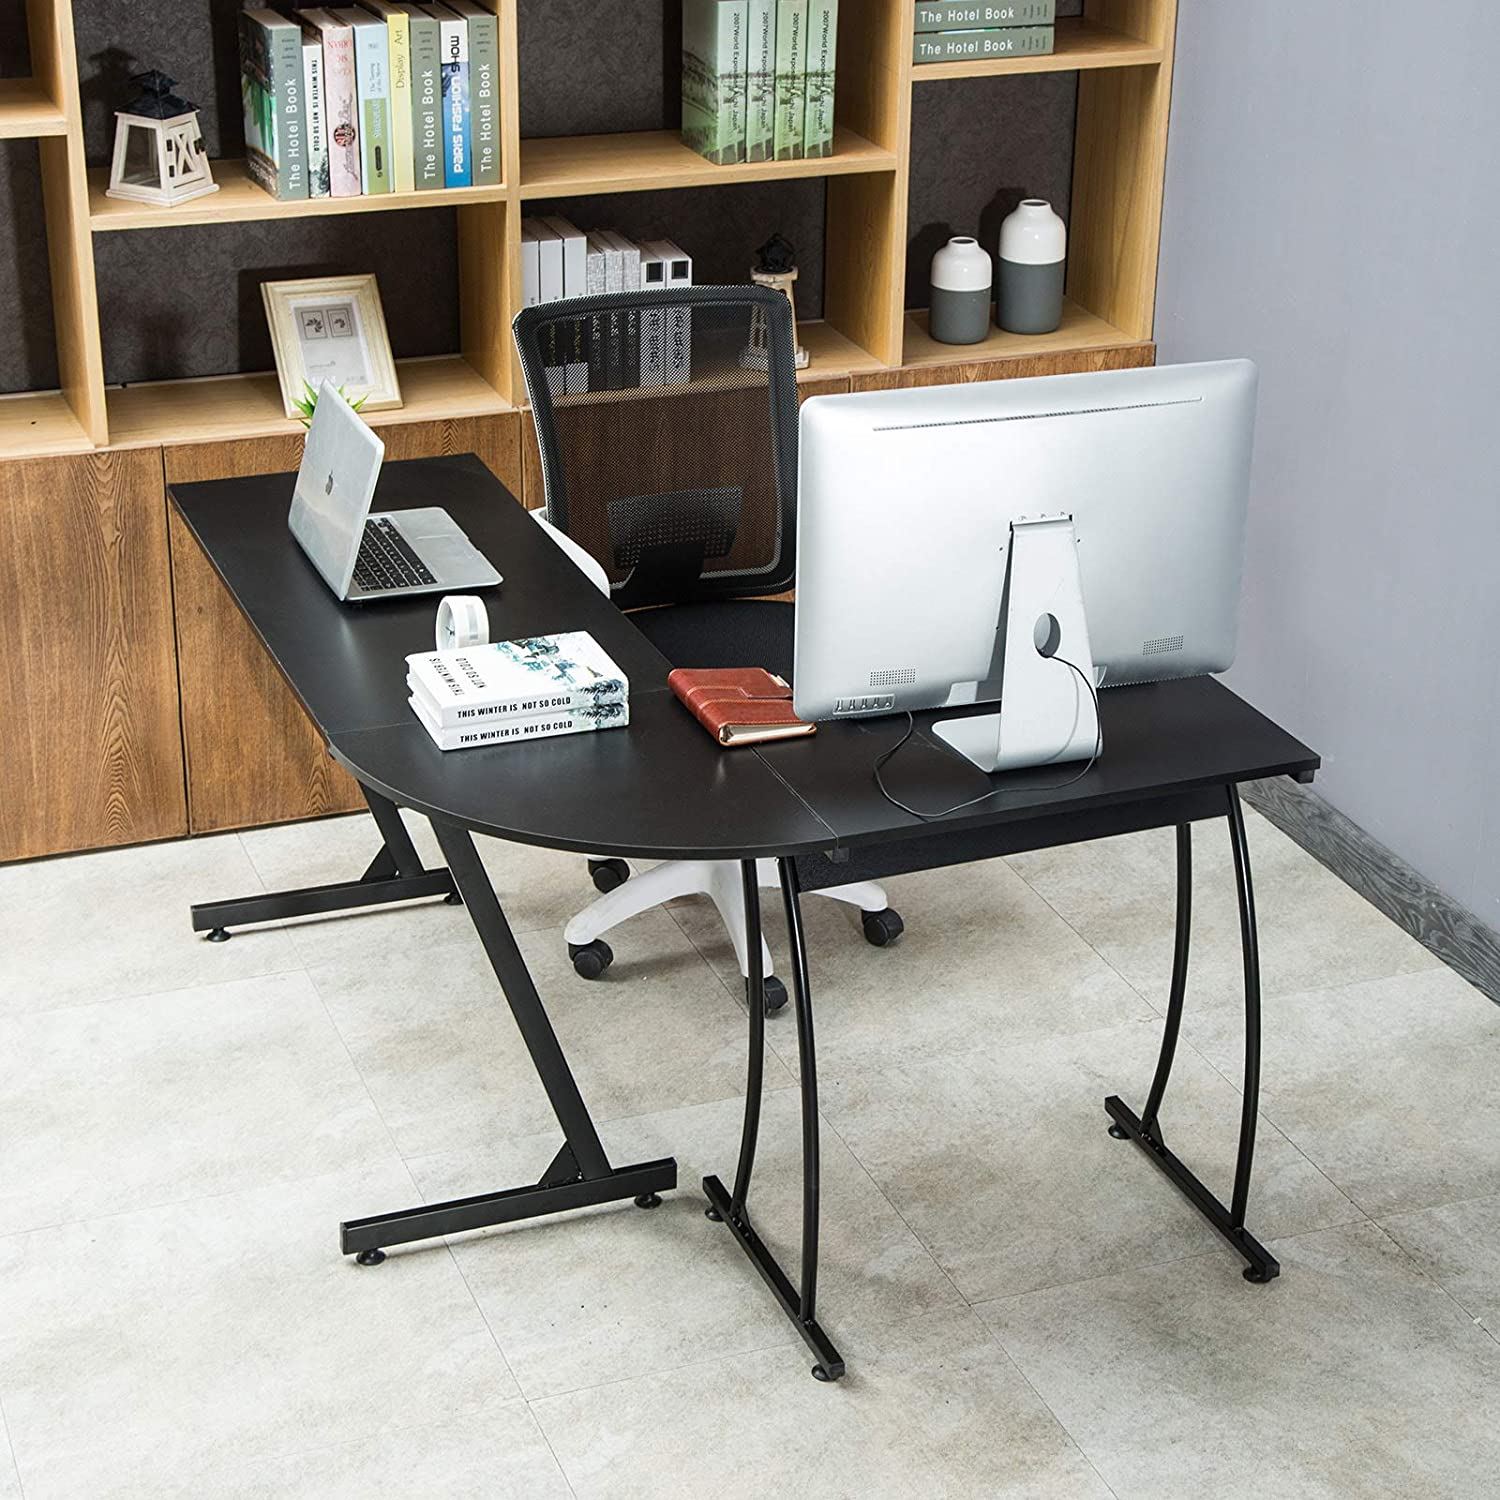 FitnessClub L-Shaped Corner Computer Desk PC Laptop Wood Table Workstation For Studio Home Office Workstation and School Furniture Black Board Steel Frame SWBUK